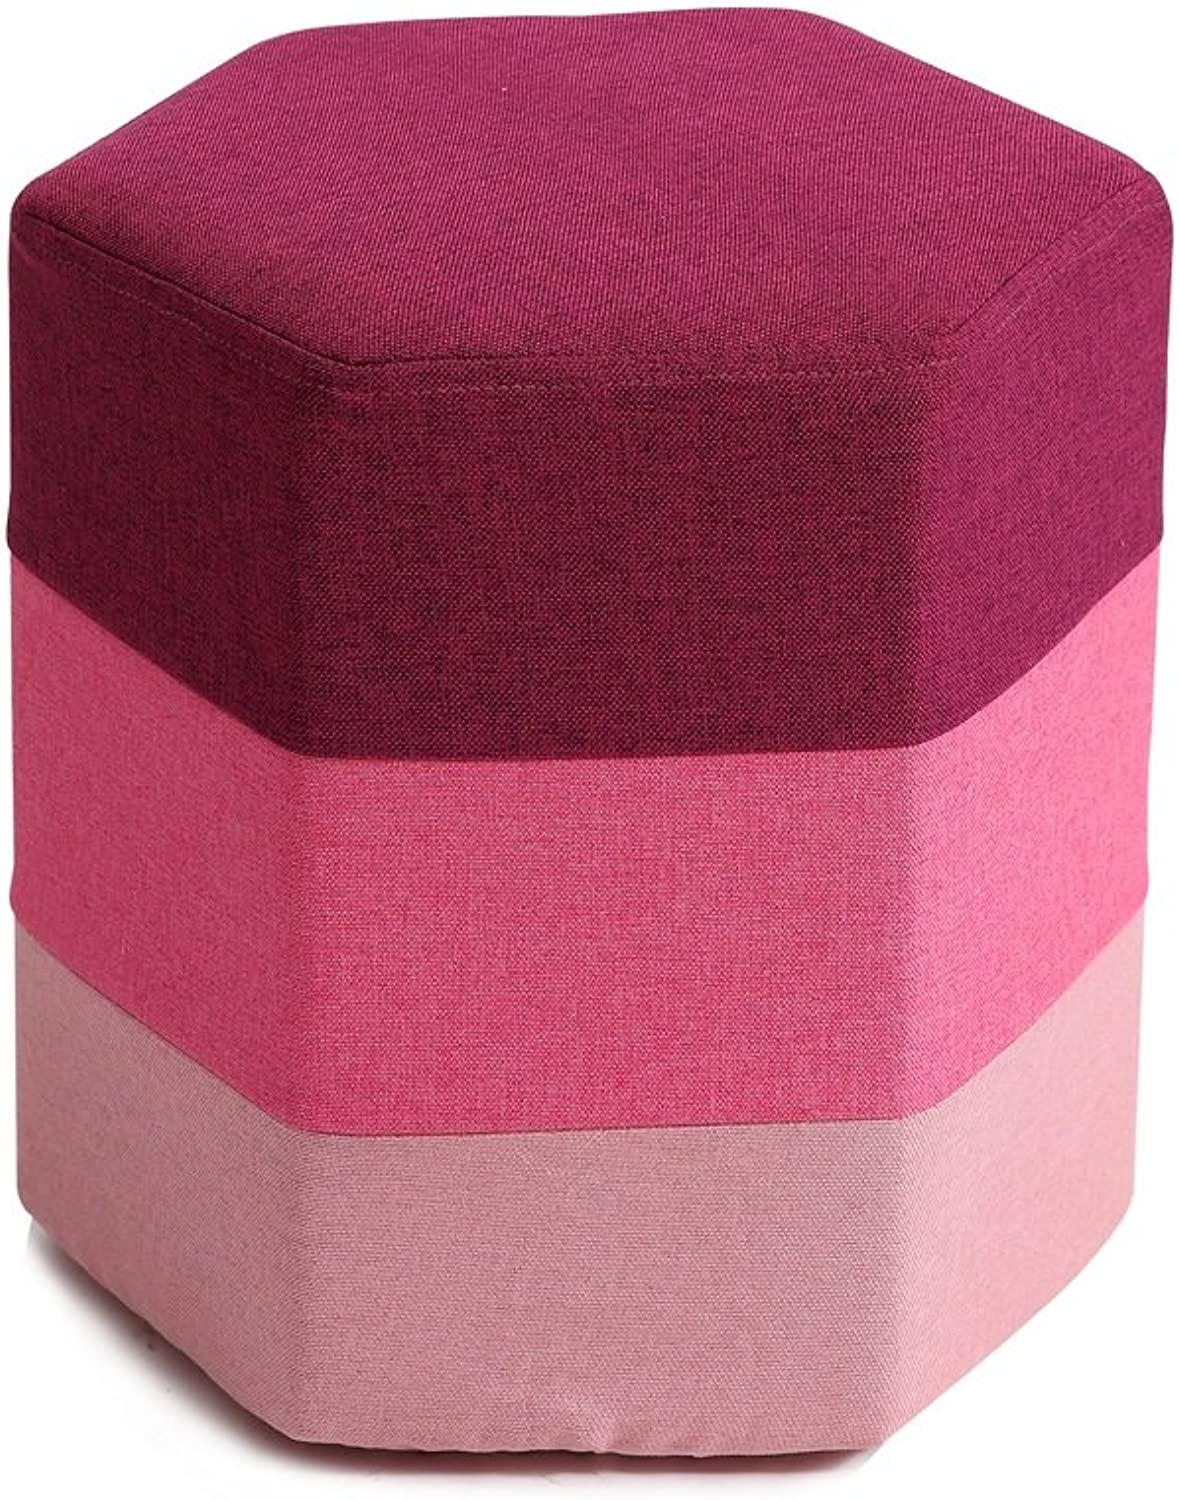 GWDJ Creative Hexagon-Shaped Footstool Cloth Sofa Stool Simple Changing His shoes Stool Sofa Stool (5 colors Available) Reinforced Footrest (color   C)